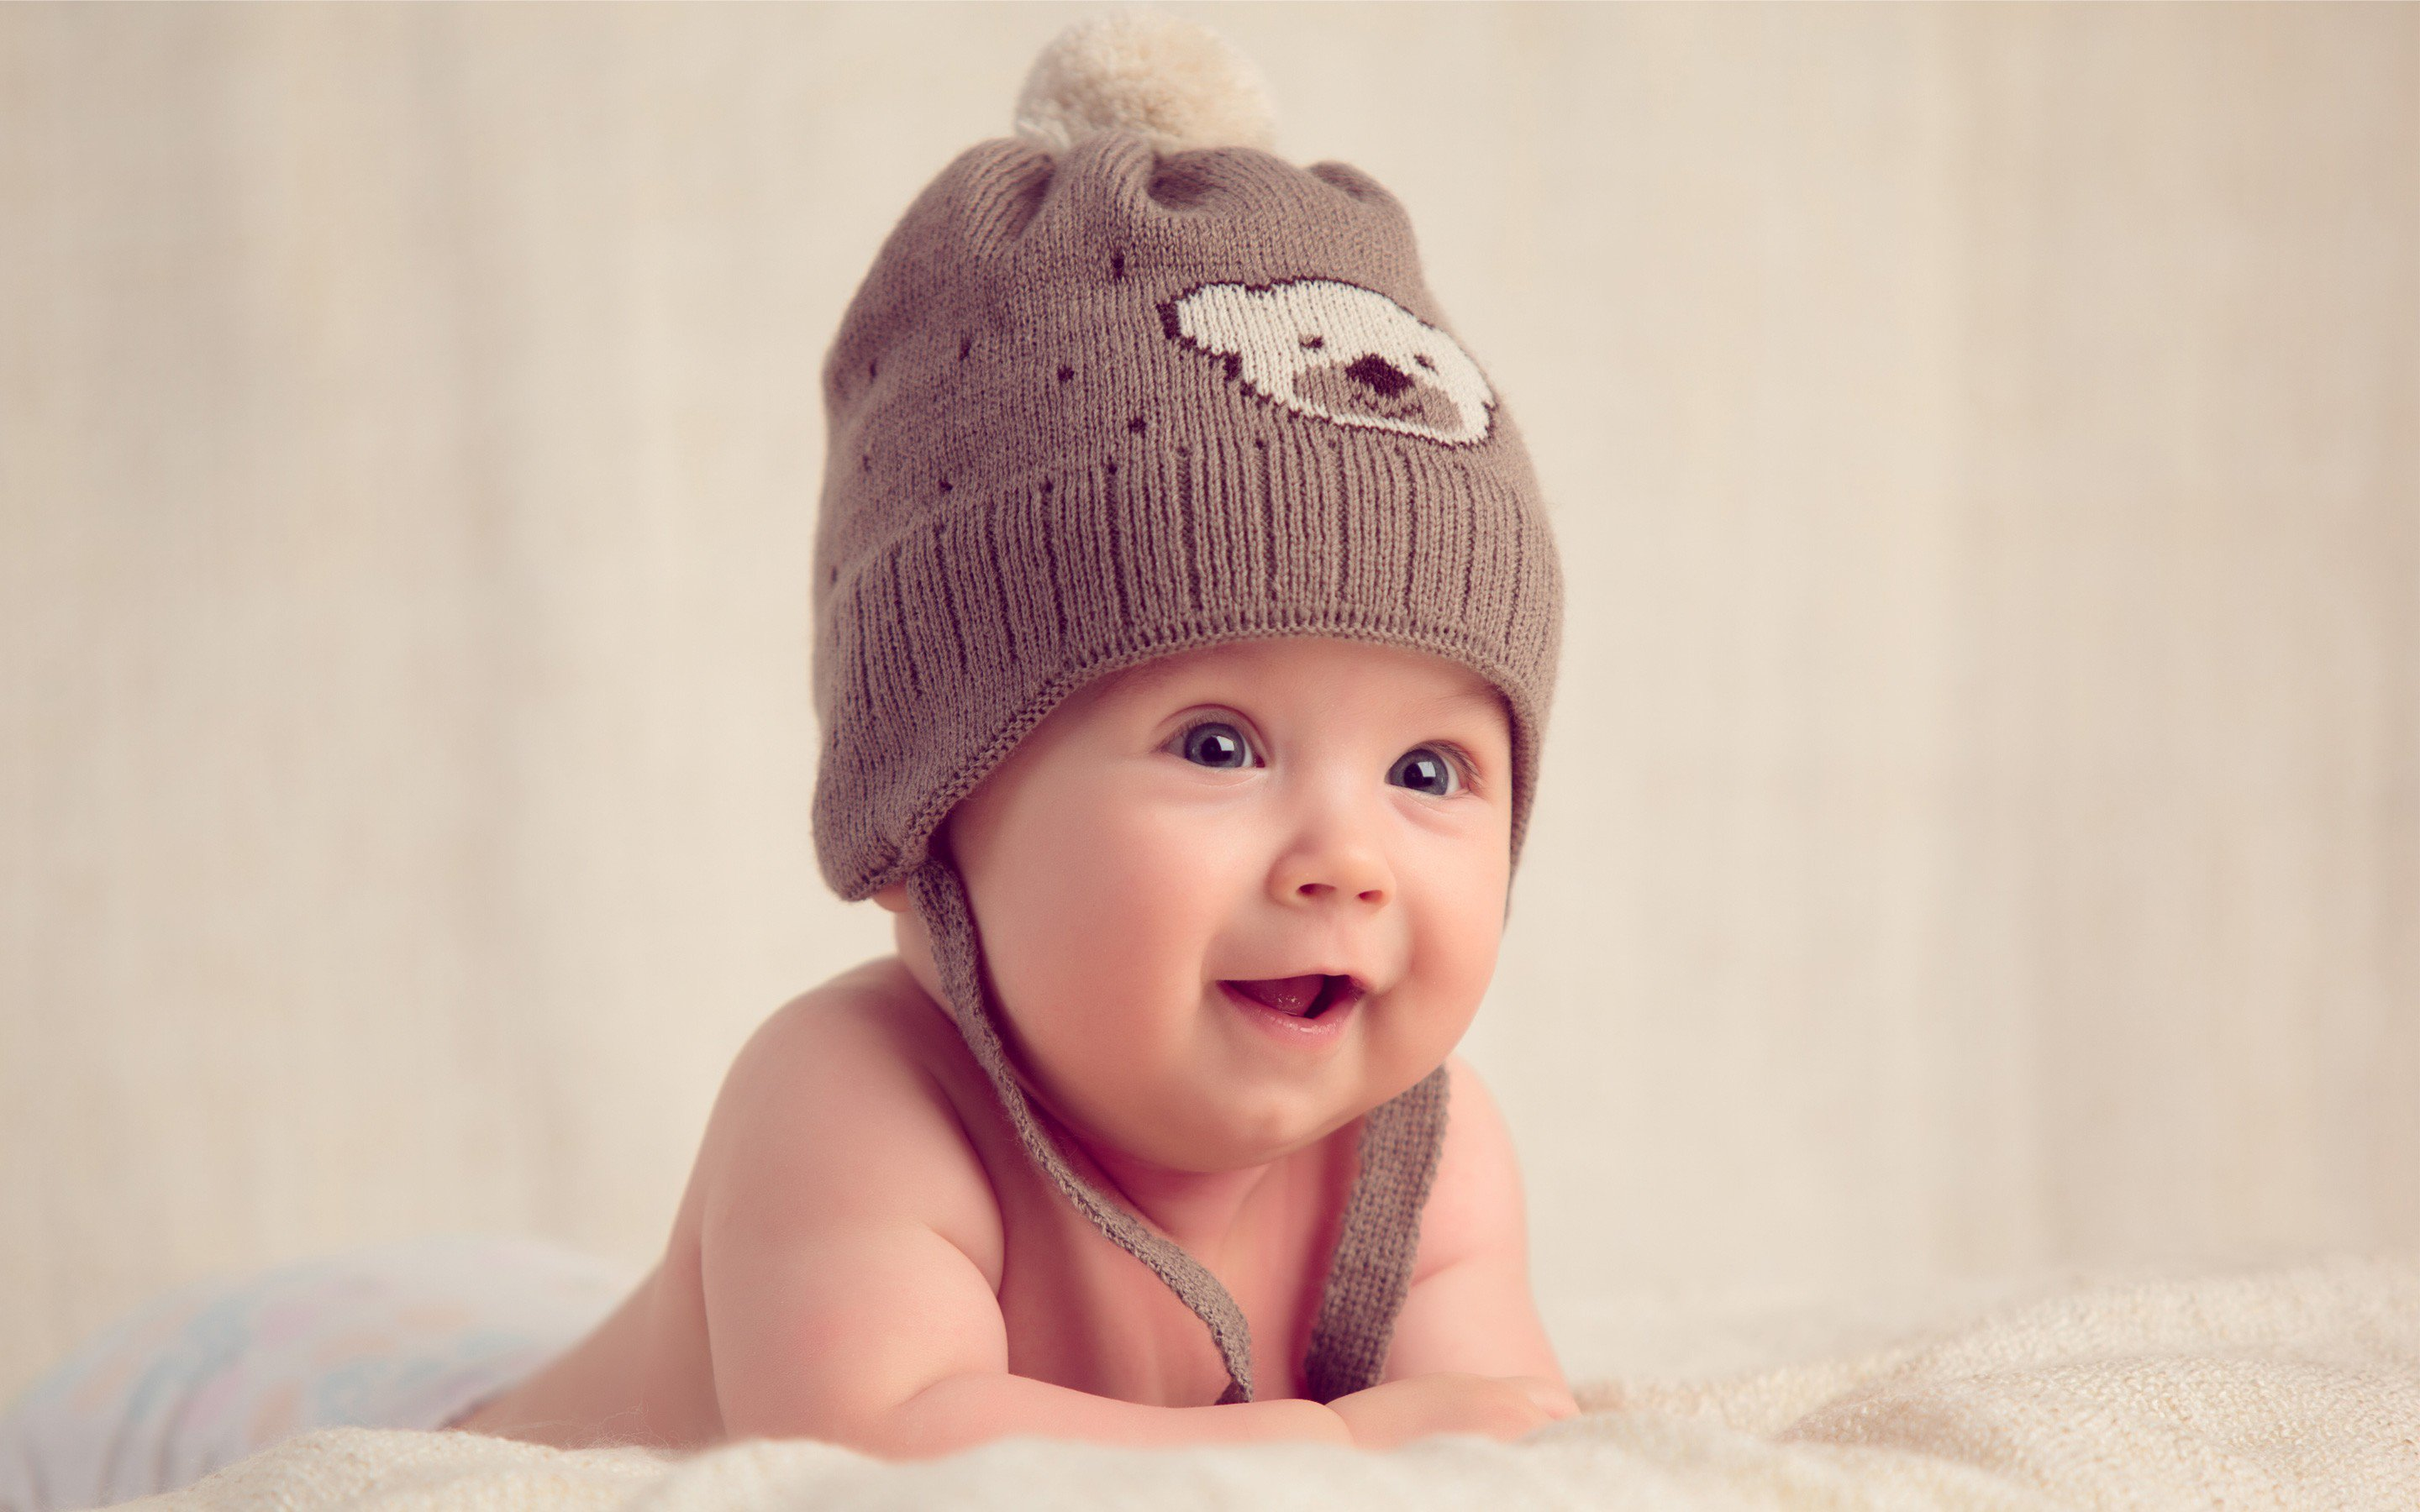 smiling baby hd cute 4k wallpapers images backgrounds photos